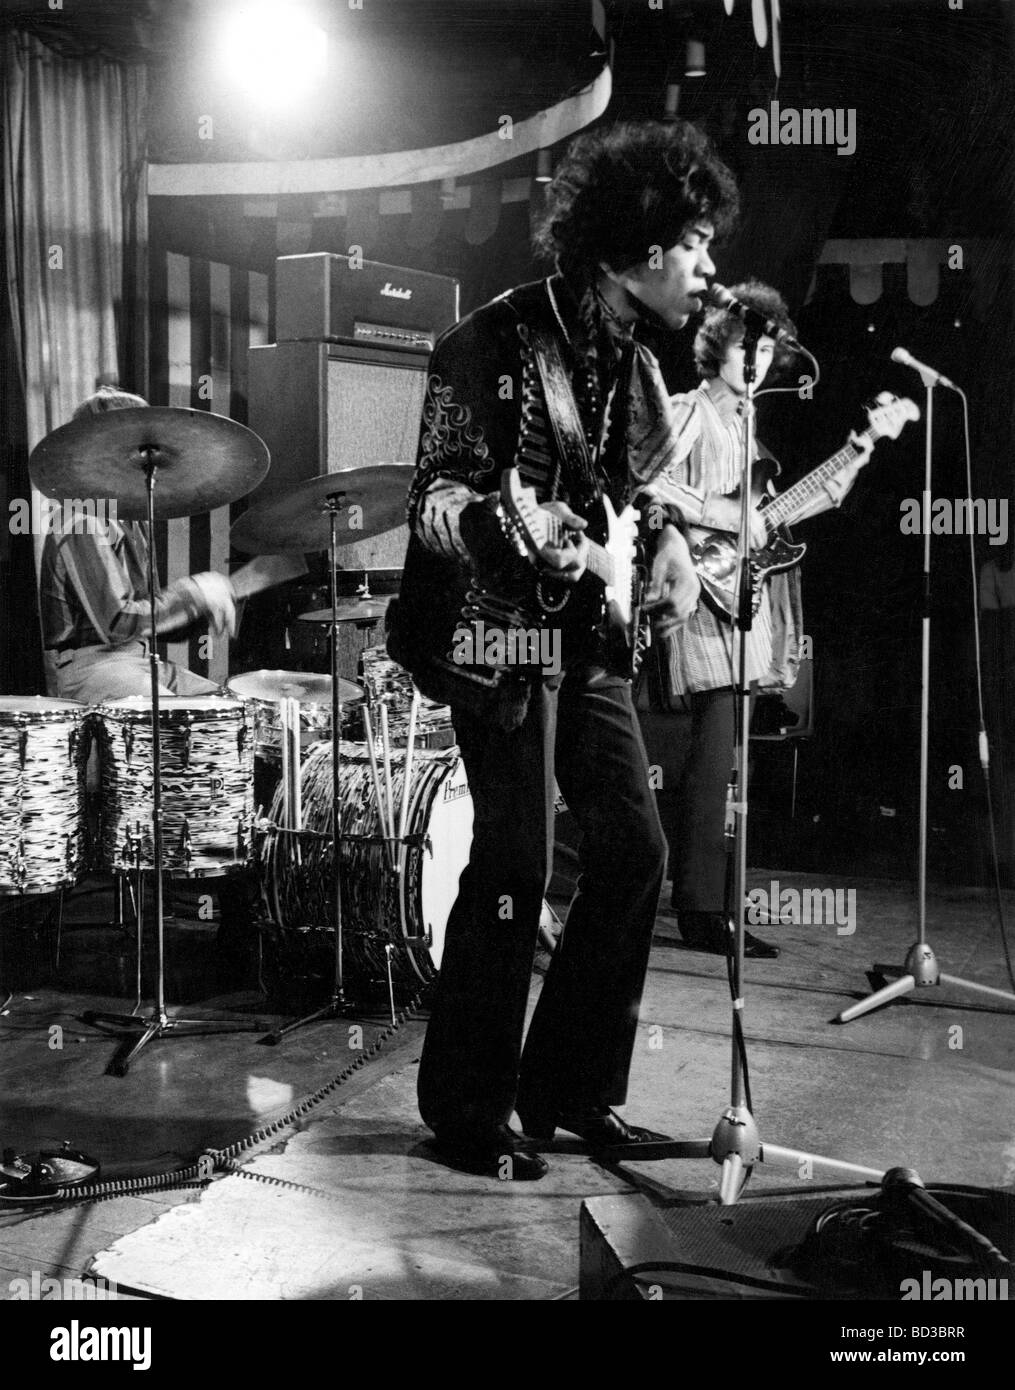 THE JIMI HENDRIX EXPERIENCE recording a set for German TV at the Marquee Club in Wardour Street  on 2 March 1967 - Stock Image